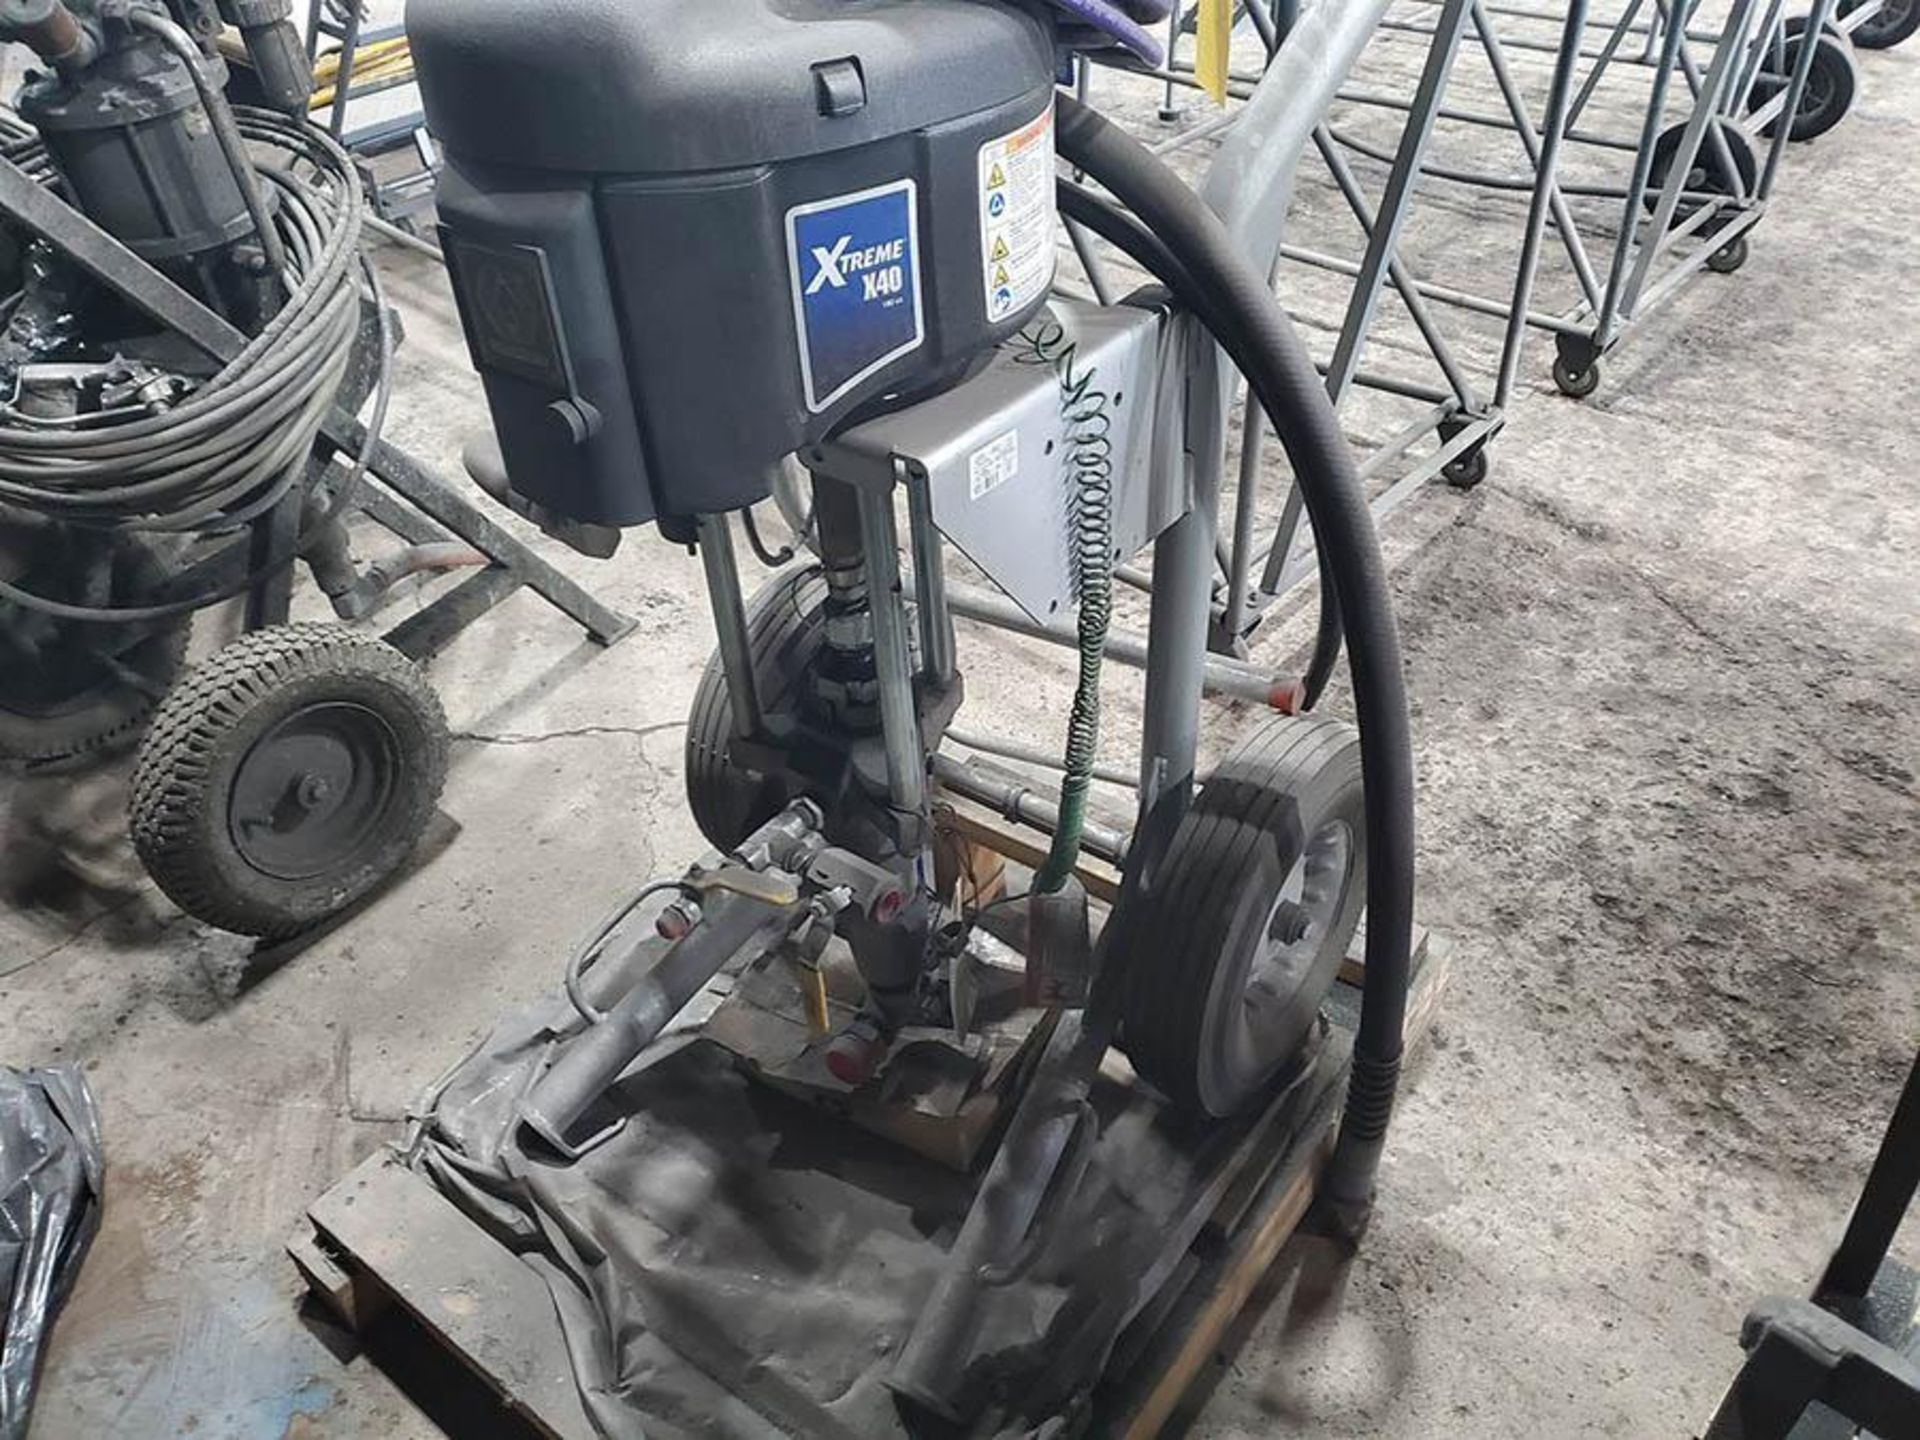 GRACO XTREME X40 SPRAYER, PART NO. 287974, S/N A9544, SERIES C16C 100PSI MAX - Image 2 of 7